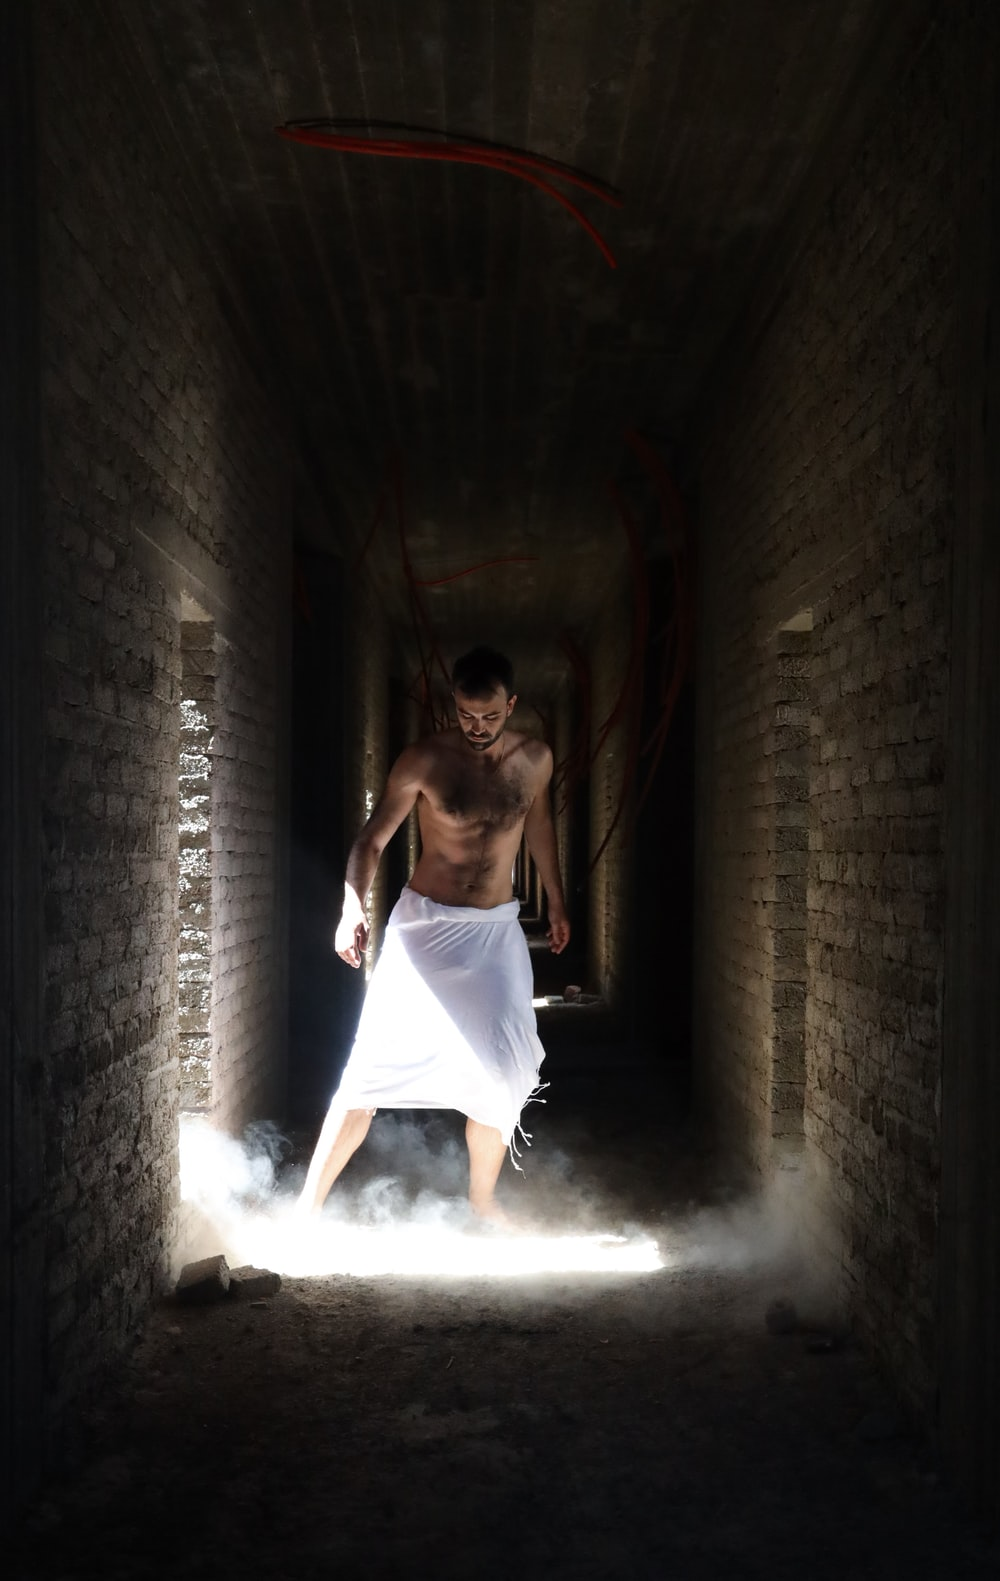 man wearing white shirts in the middle of hallway